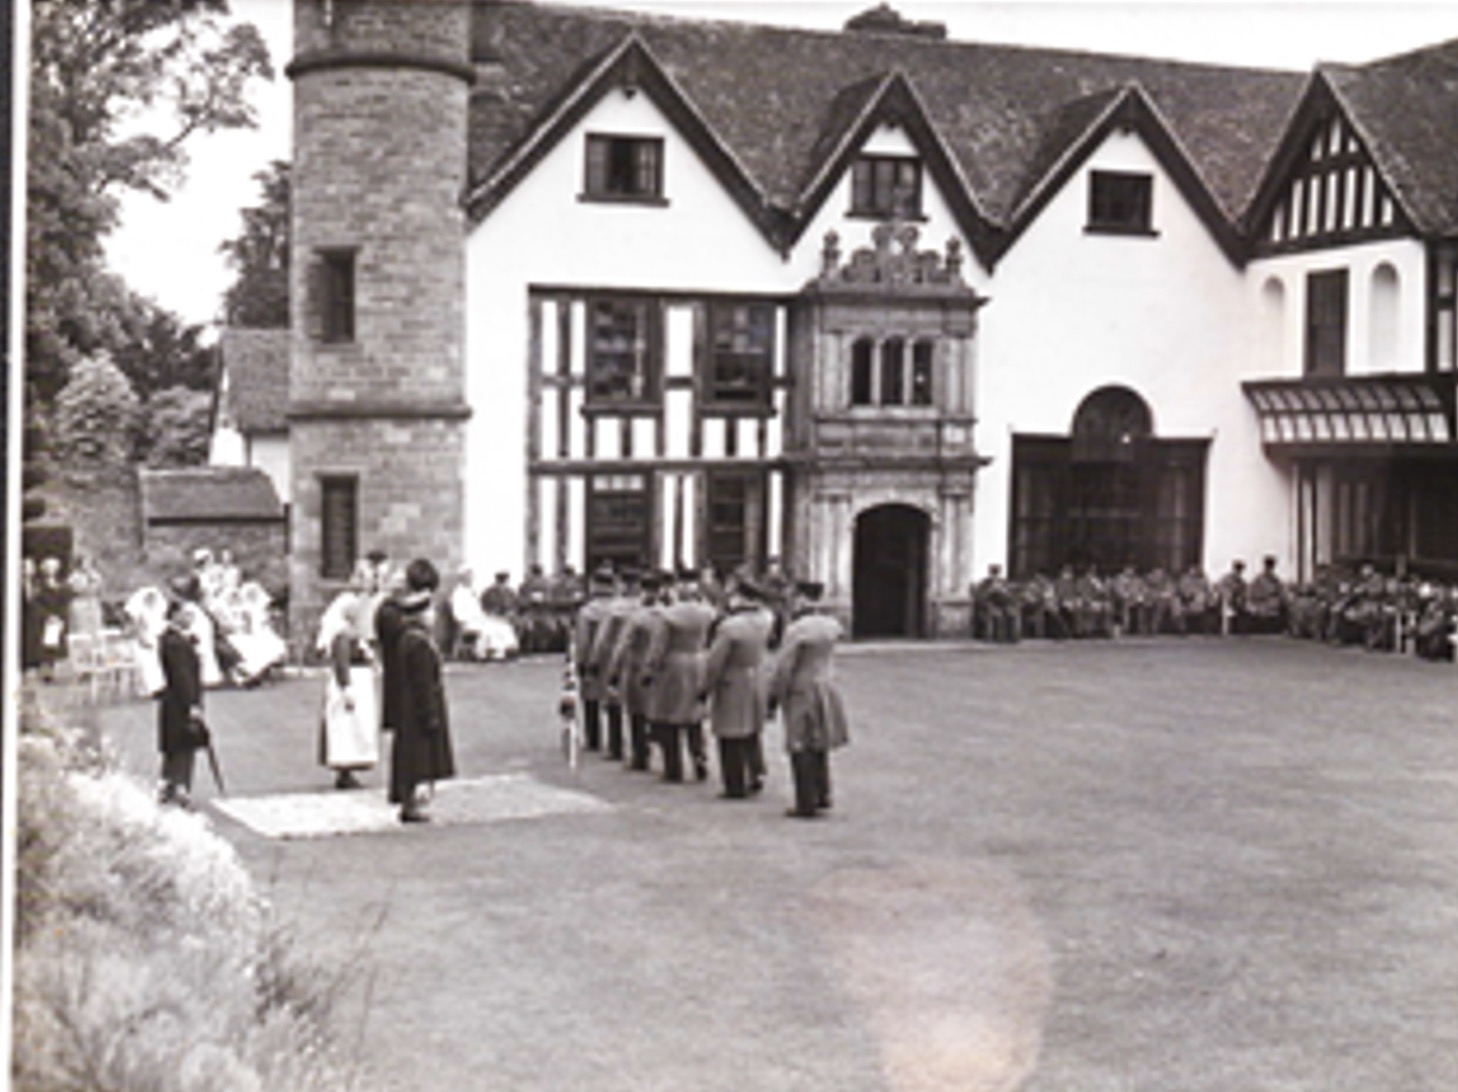 A nursing sister and five nurses watch the Founder's Day parade at Rudhall Manor in 1940